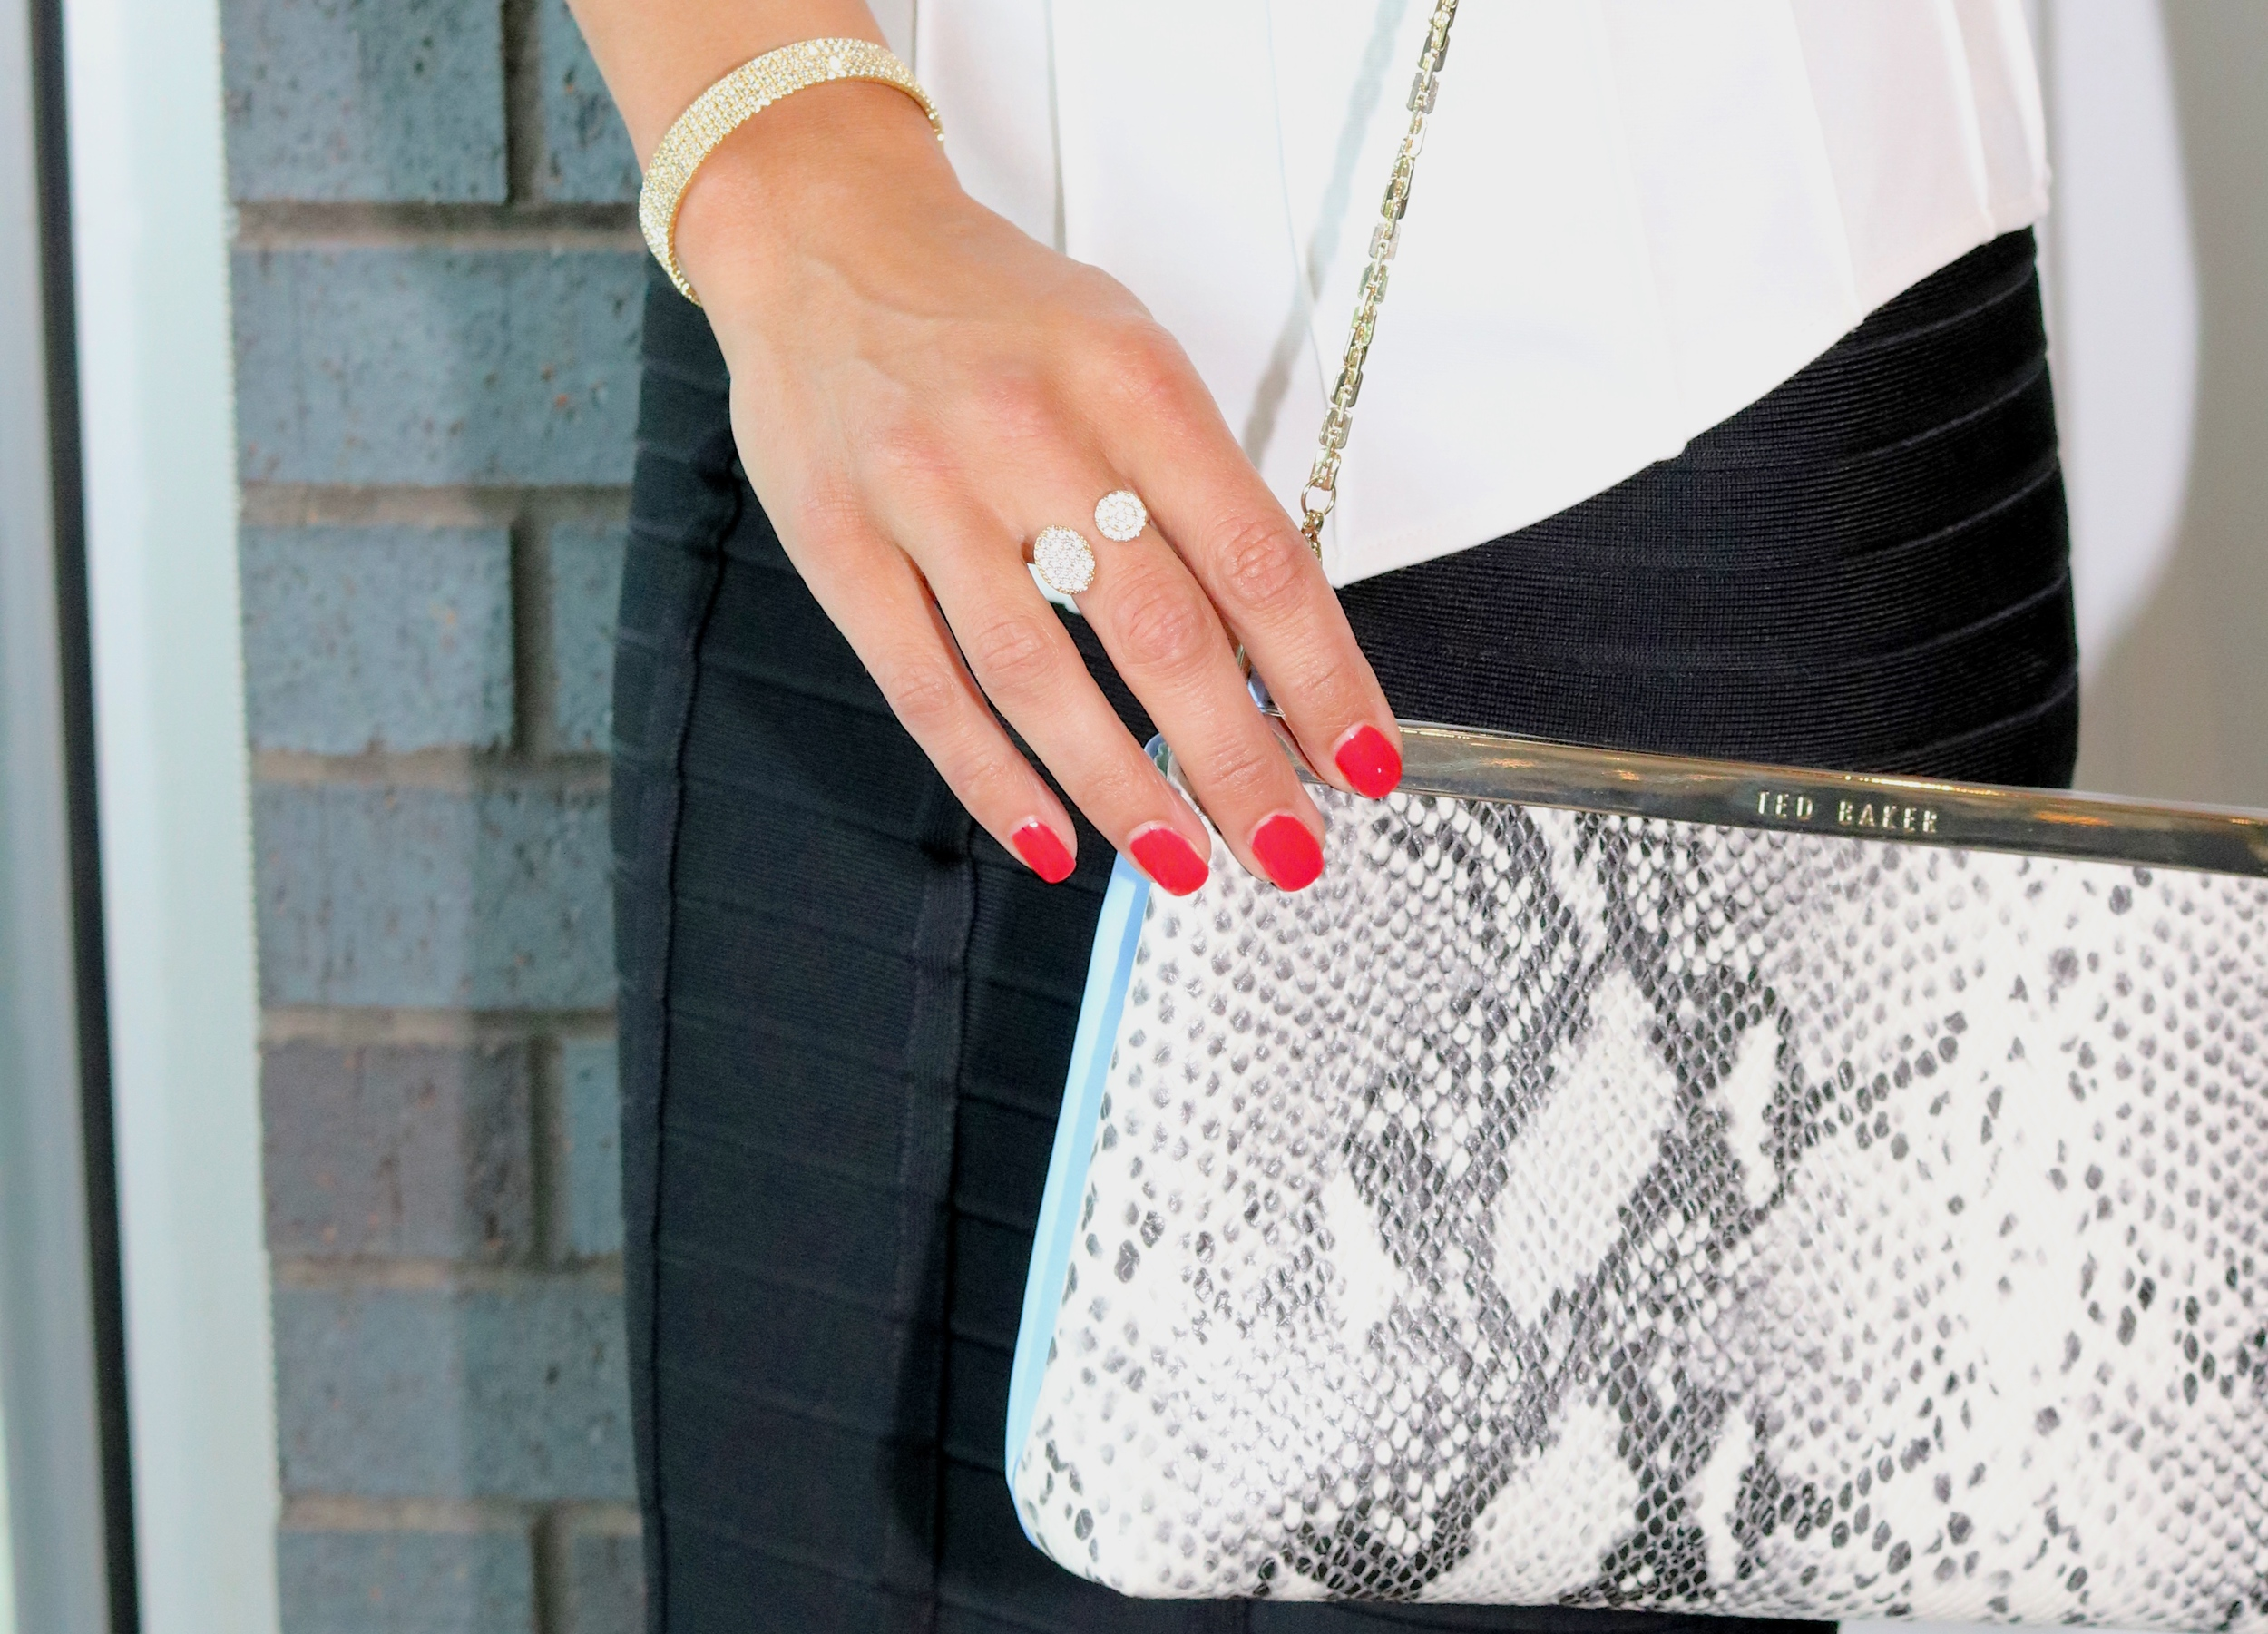 LIBERTÉ  Sun and Moon ring  and  Ted Baker Clutch  (on sale for $122)